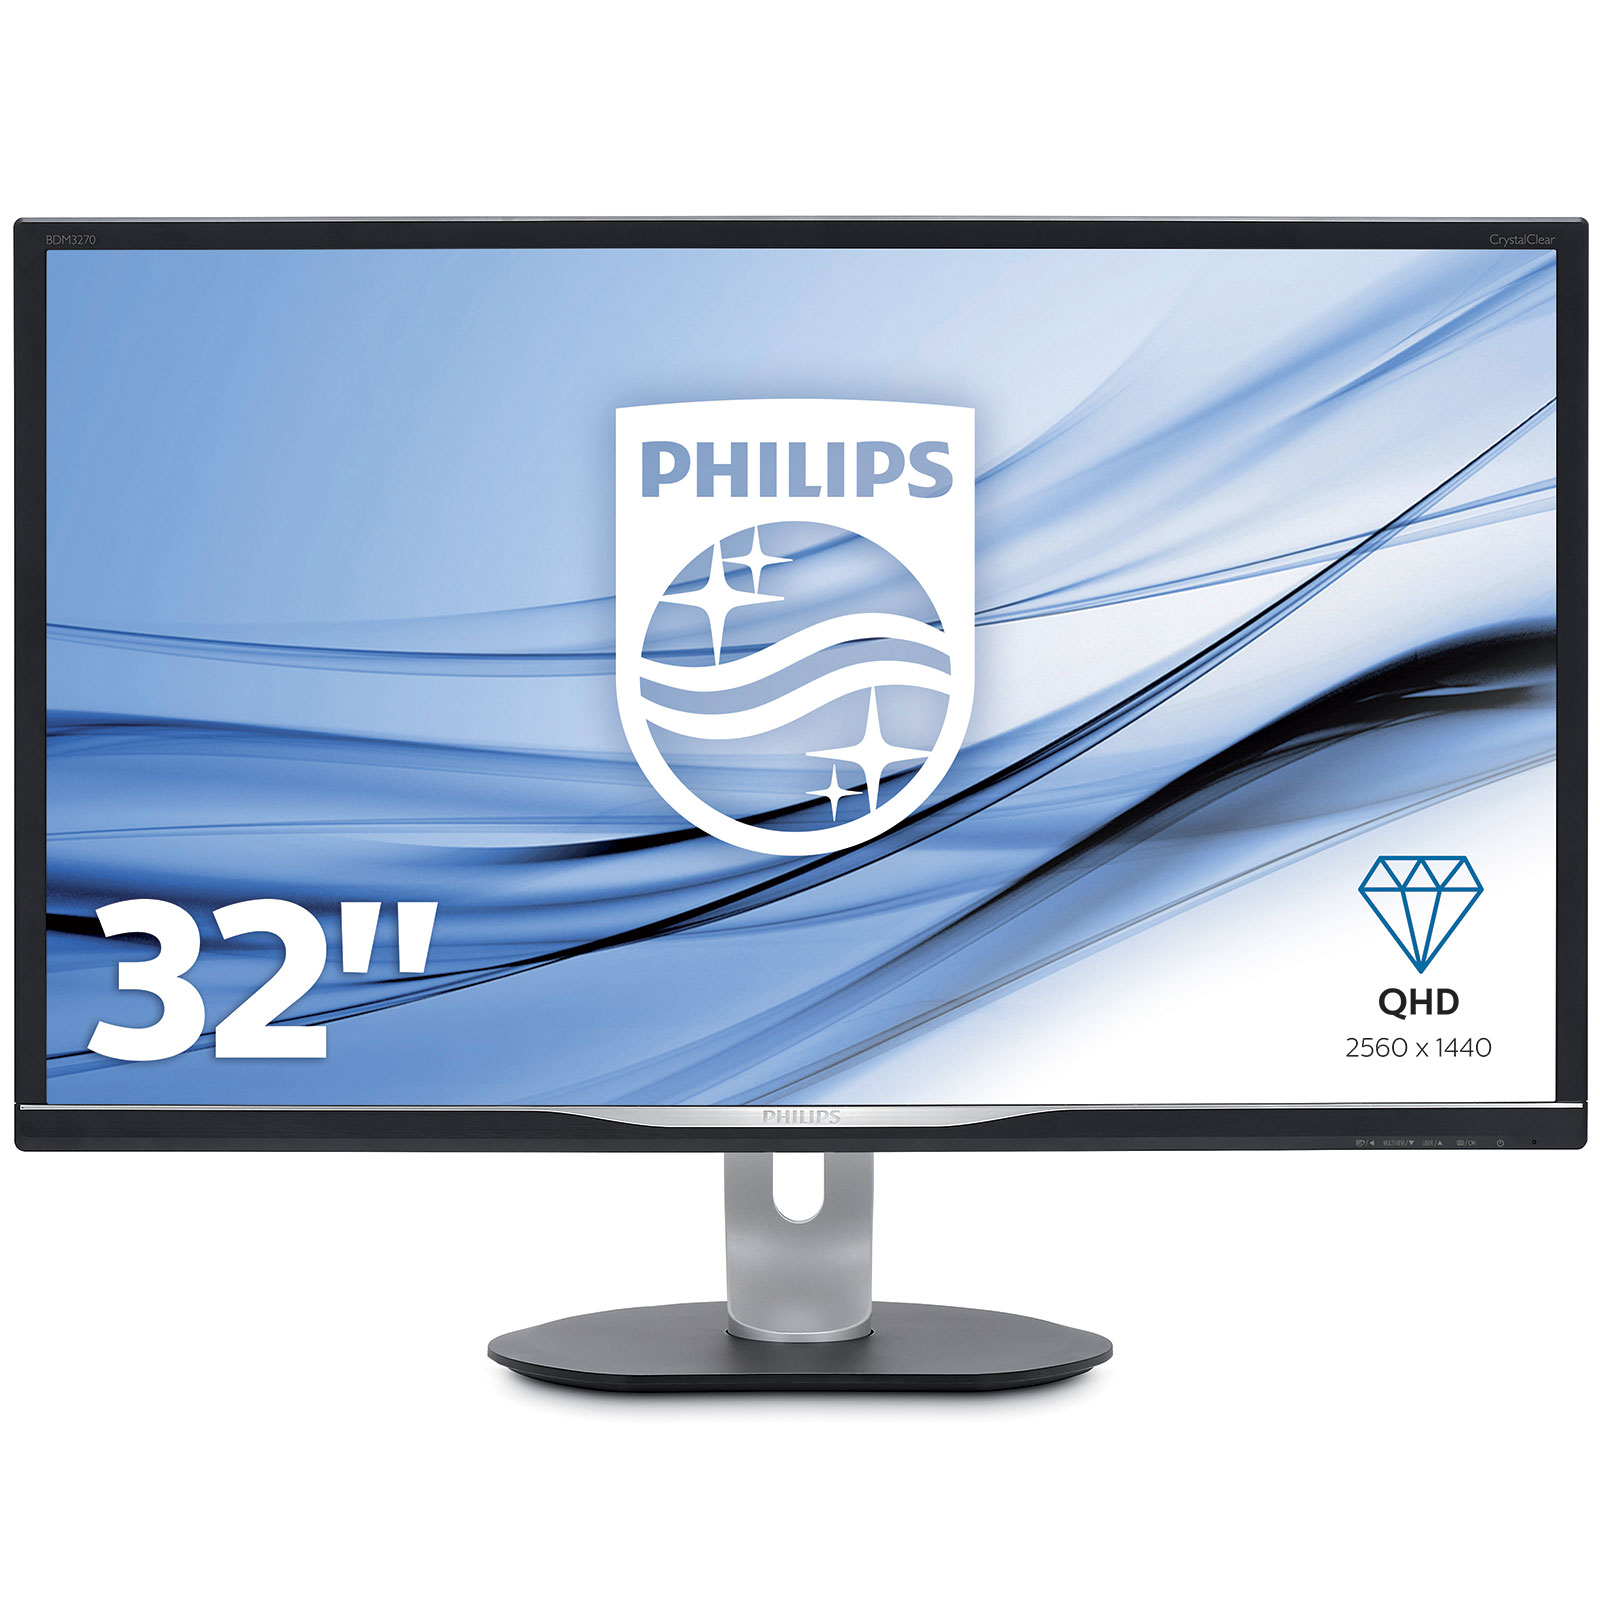 philips 32 led bdm3270qp2 ecran pc philips sur. Black Bedroom Furniture Sets. Home Design Ideas